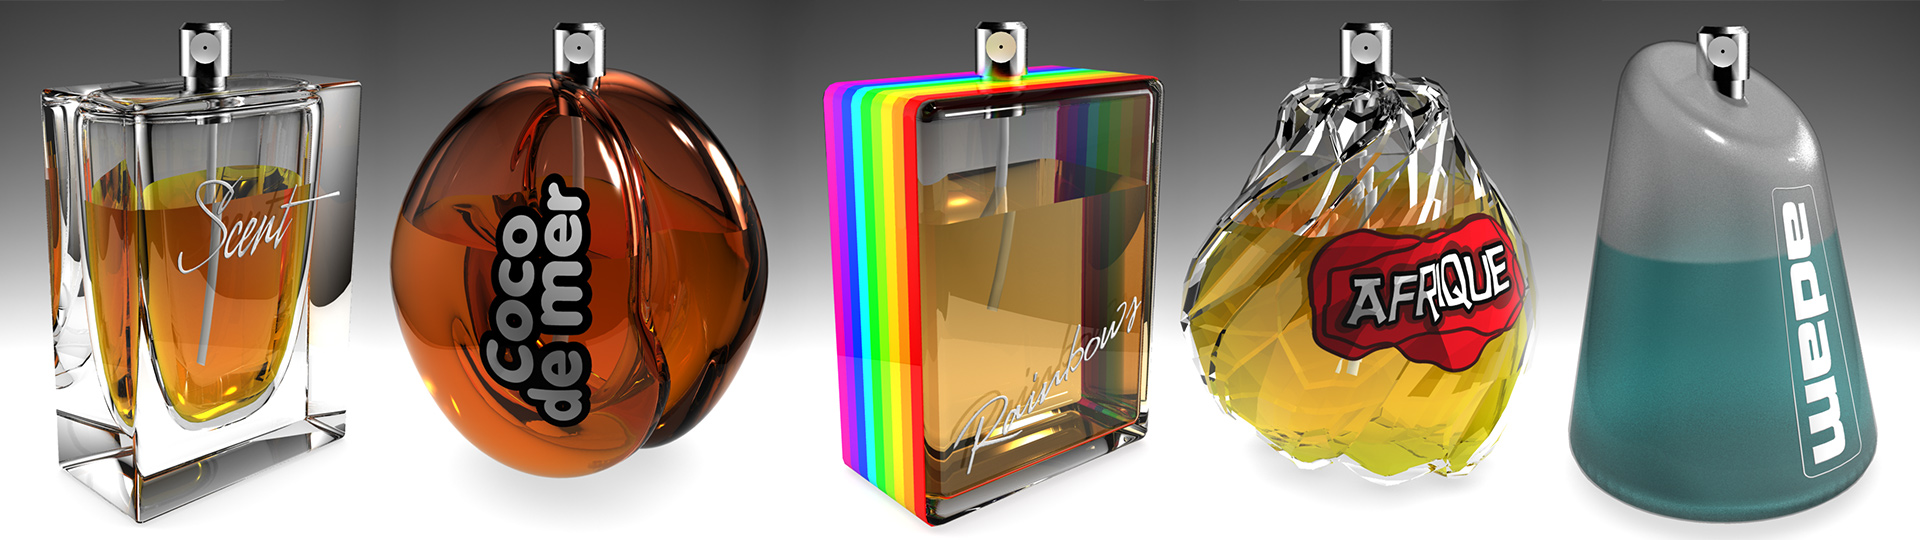 3D Product Visualization of perfume bottles